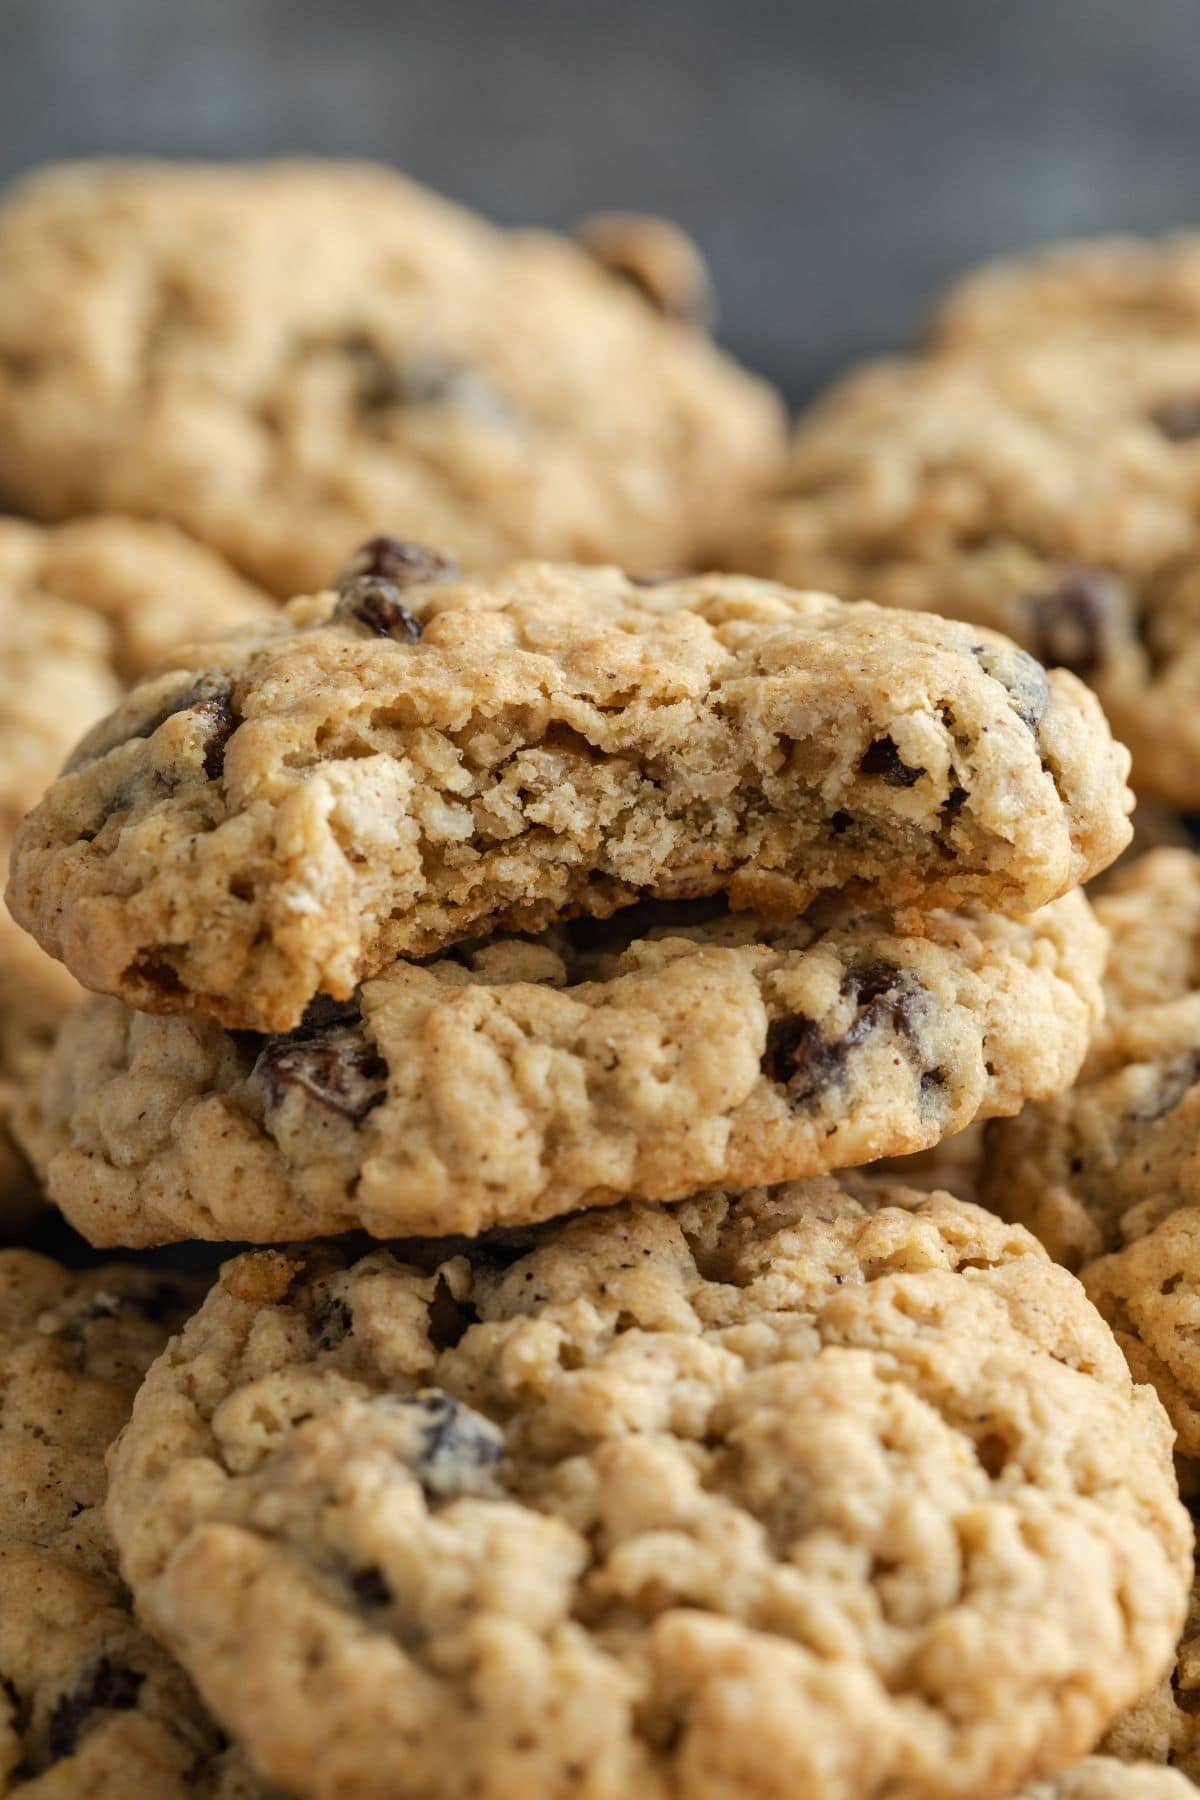 oatmeal raisin cookie with a bite taken out to show insides